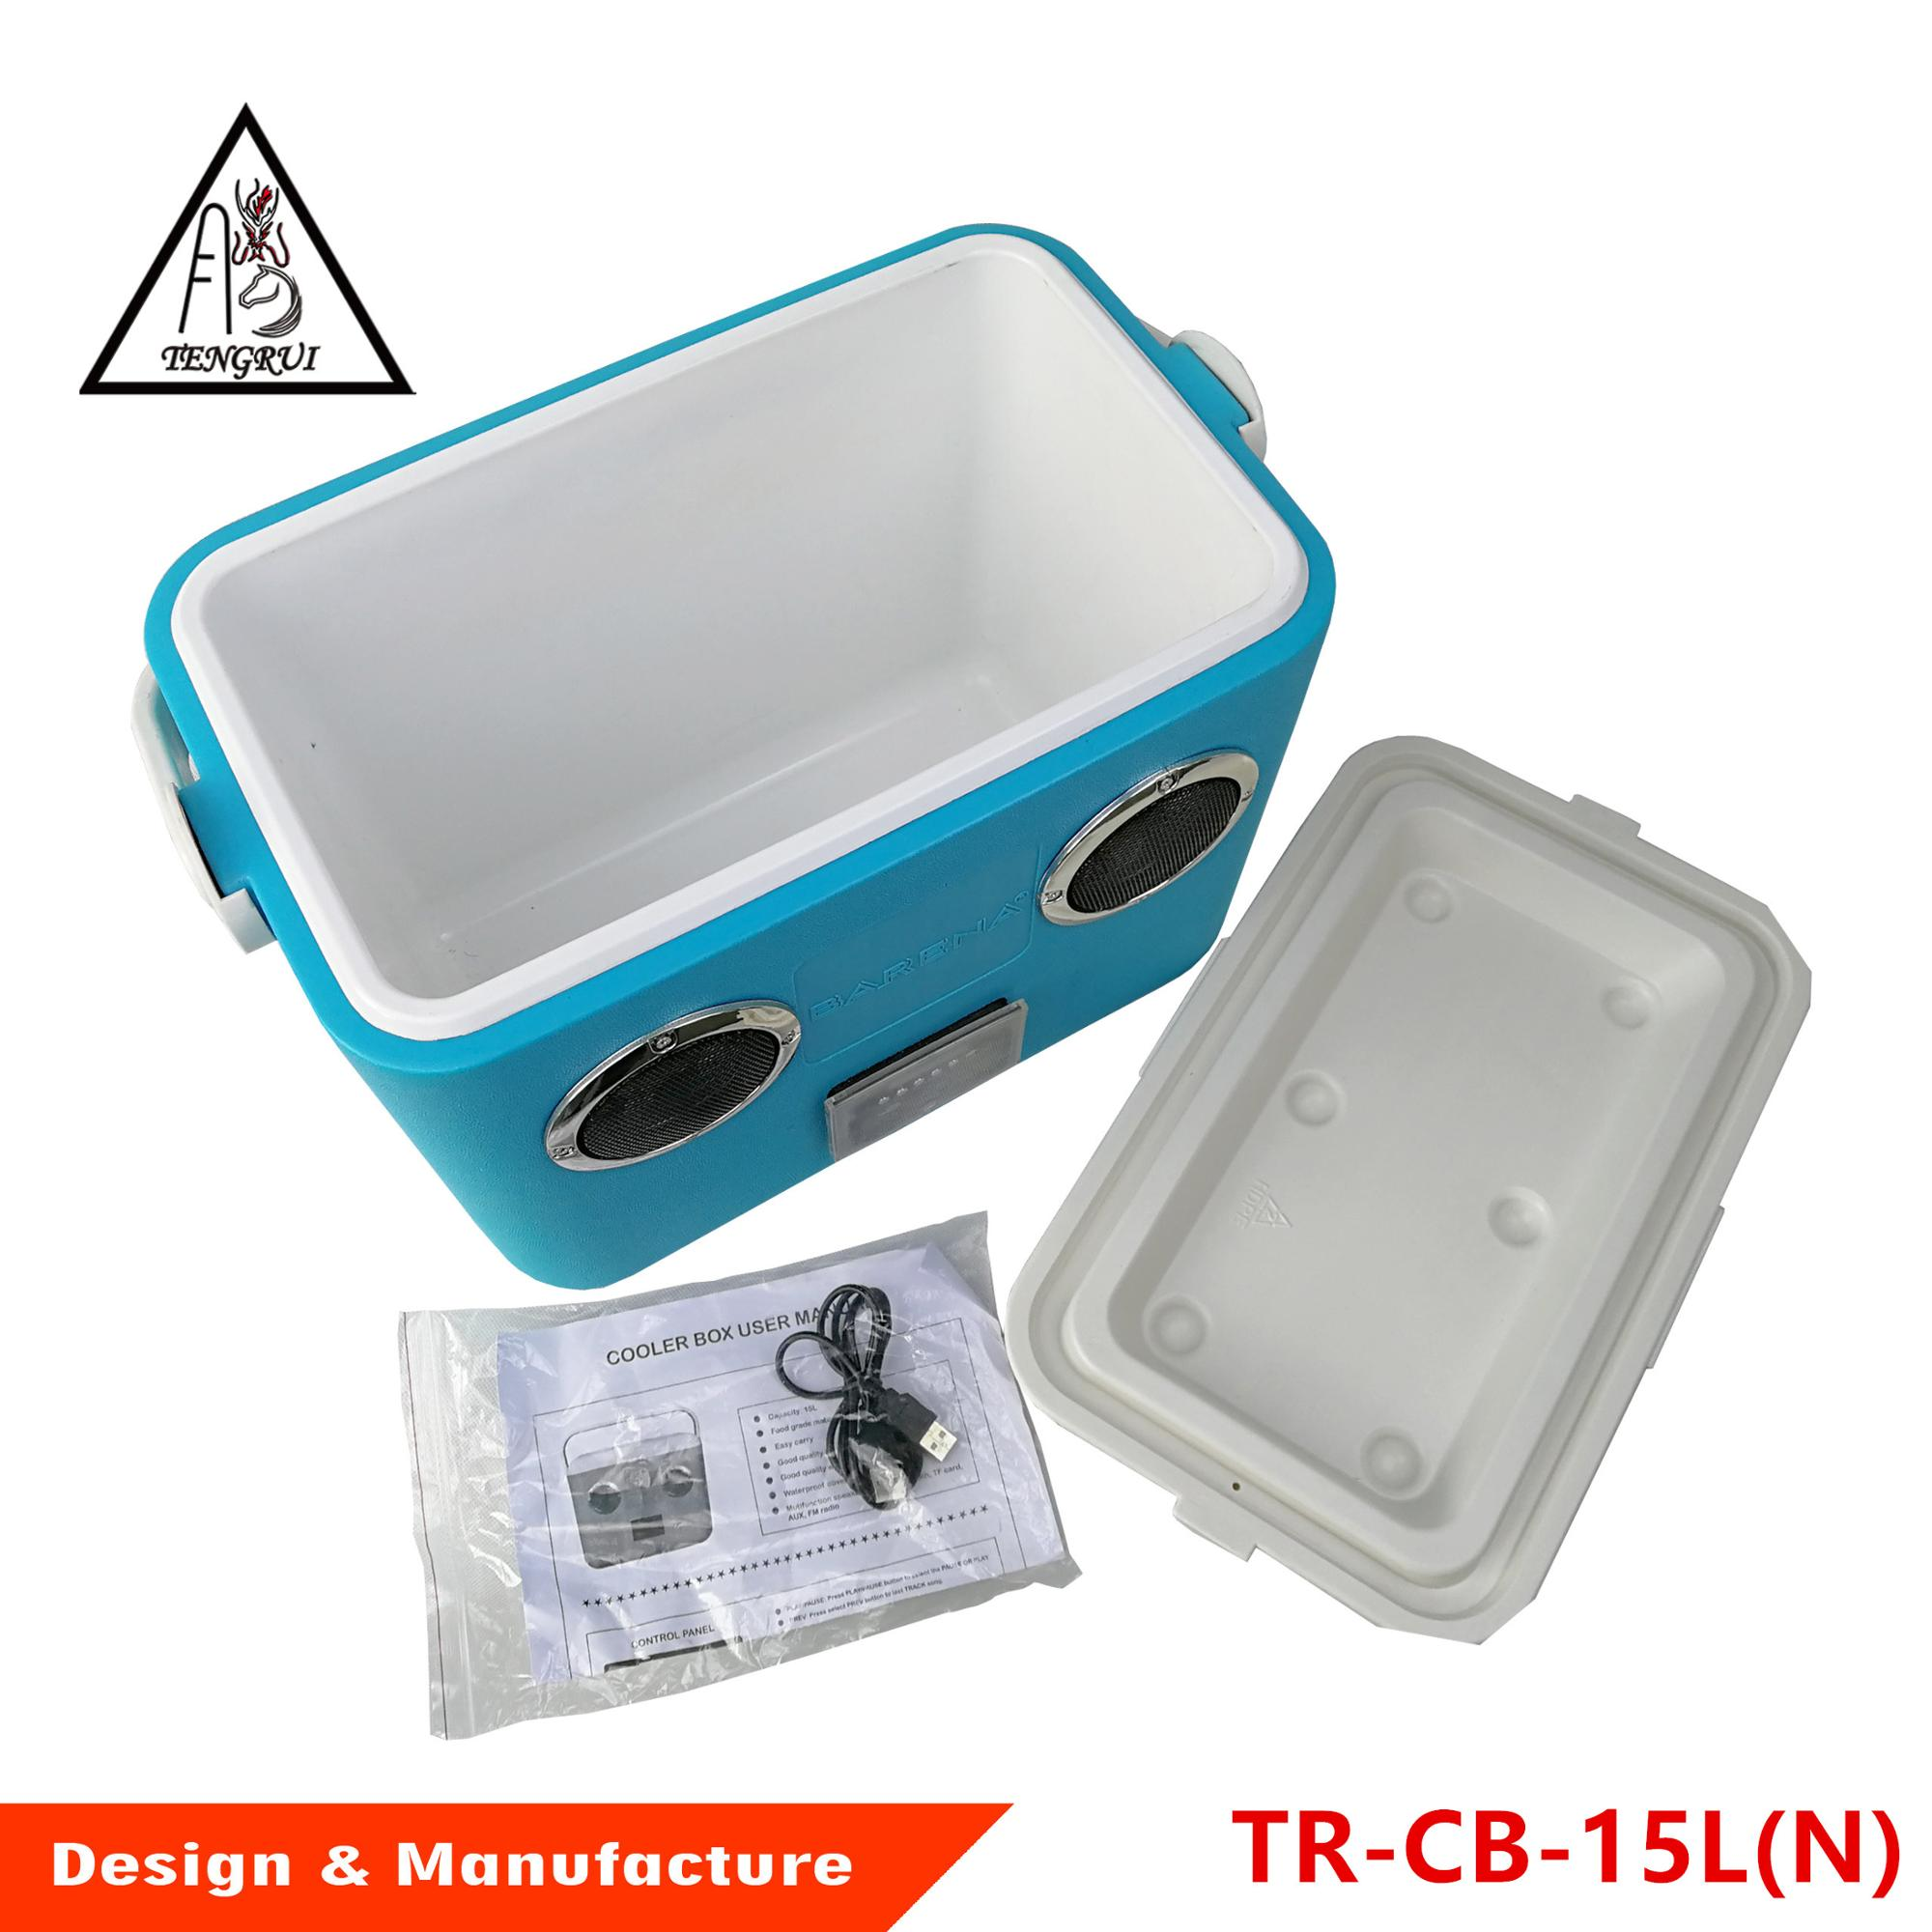 Outdoor camping portable music ice cooler box with bluetooth speaker